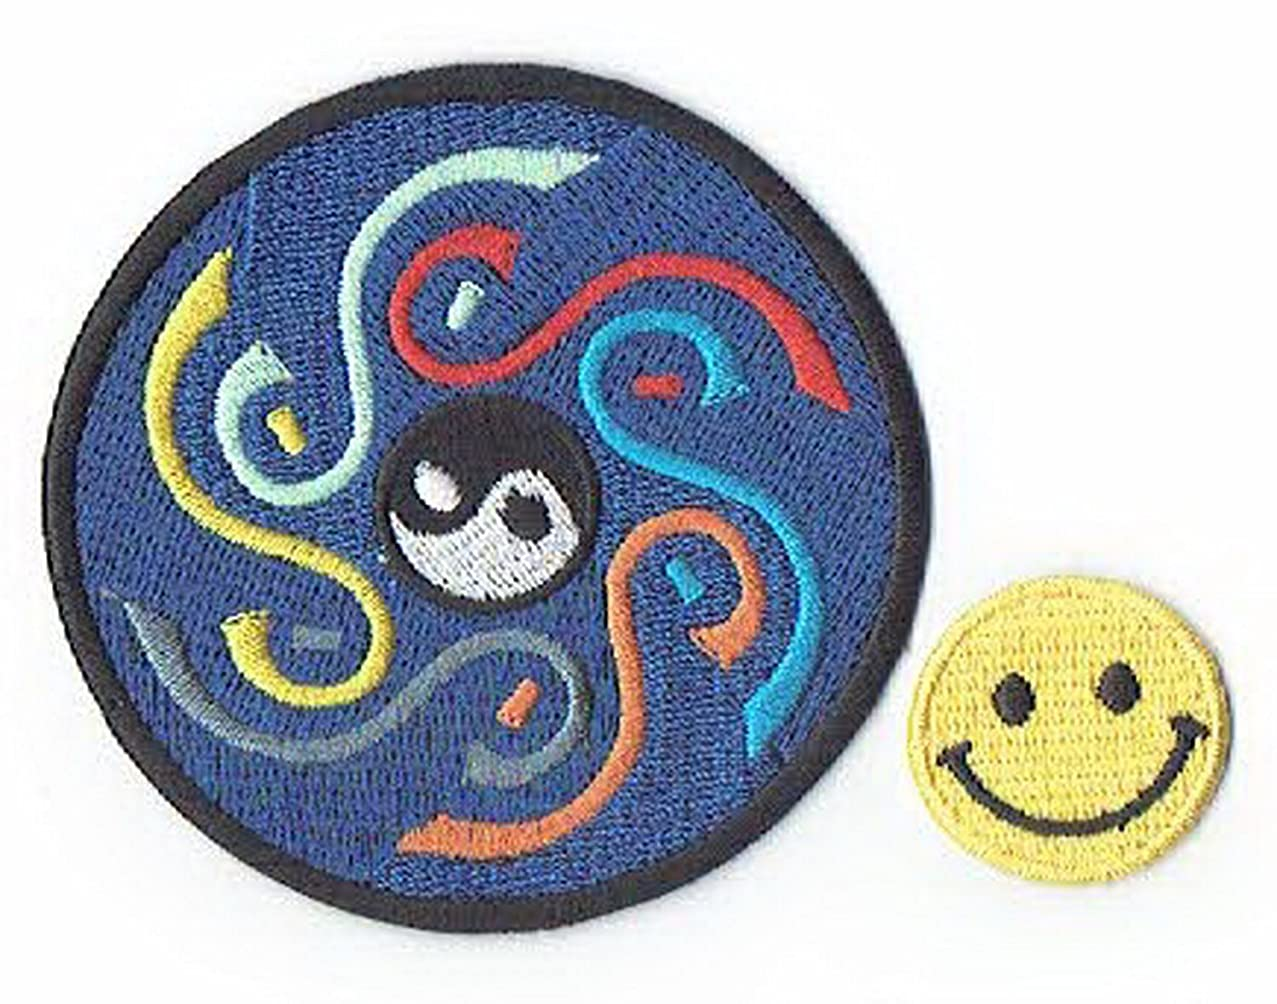 Patch Cube Ying YANG OHM Sign Applique Embroidered Iron on Patches (Wappen, ワッペン, ??) with Yellow Tiny Smiley Patches